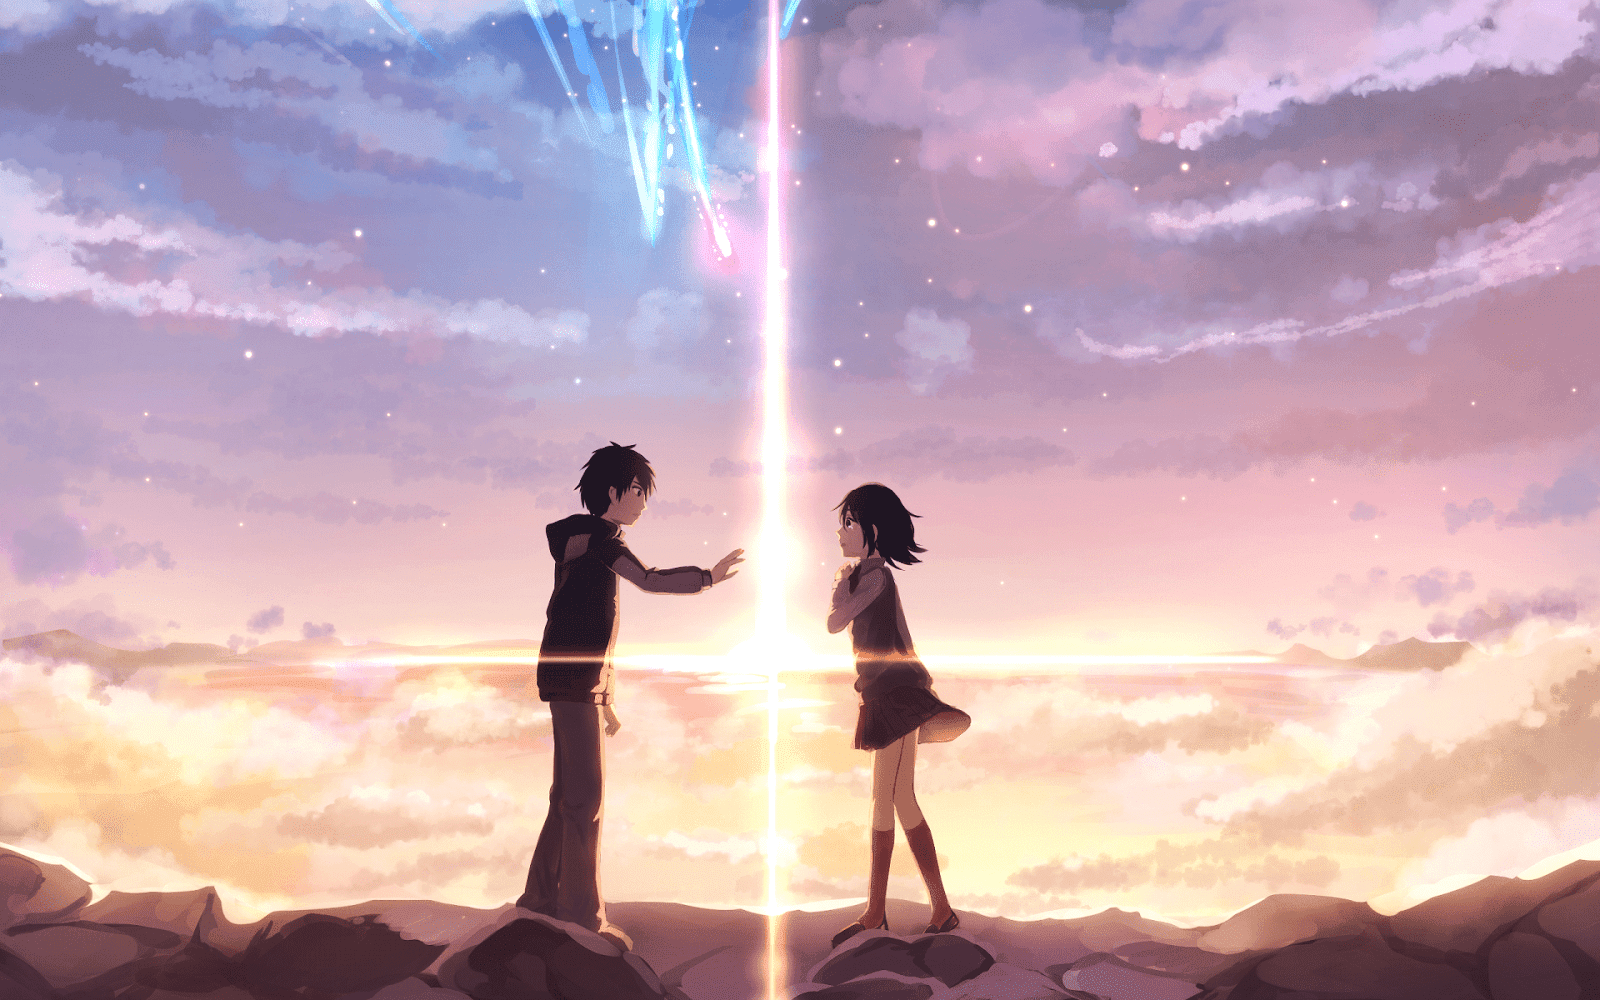 AowVN%2B%252822%2529 - [ Hình Nền ] Anime Your Name. - Kimi no Nawa full HD cực đẹp | Anime Wallpaper